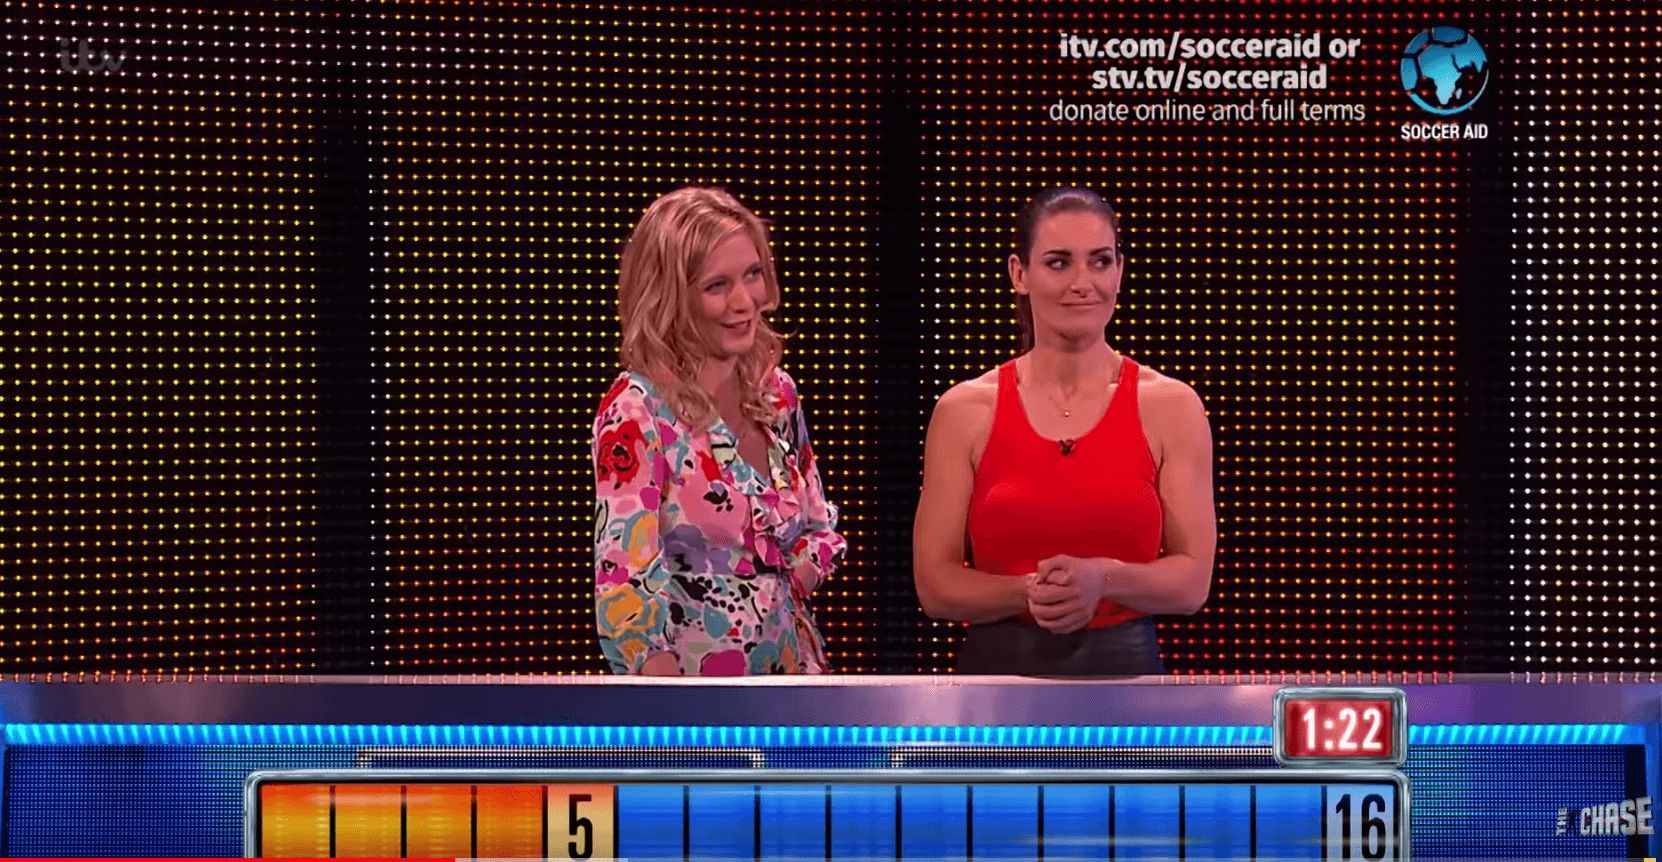 Image may contain: The Chase biggest wins, The Chase, big, wins, final, ITV, celebrity, Rachel Riley, Kirsty Gallacher, Bradley Walsh, final, chase, cash, builder, prize, fund, daytime, game show, Clothing, Apparel, Person, Human